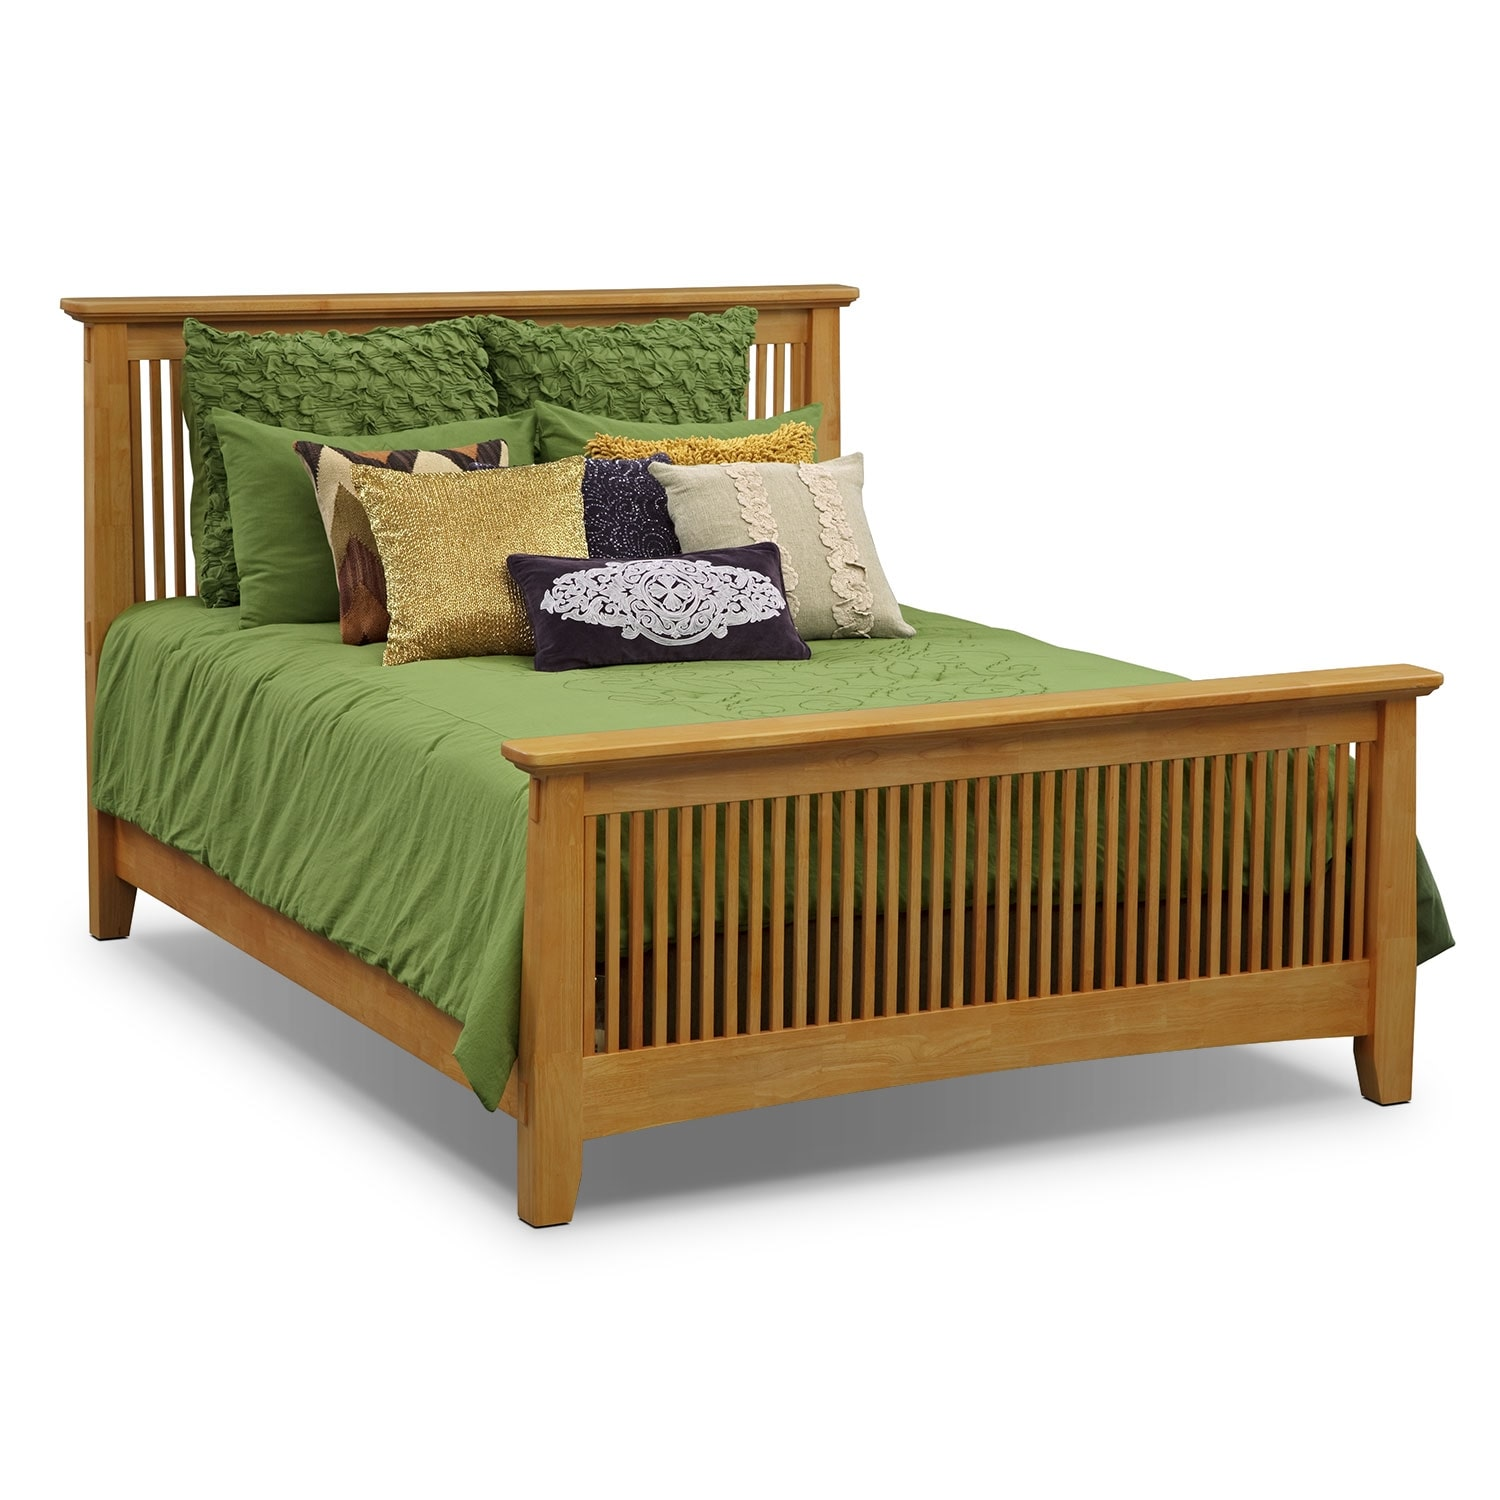 Accent and Occasional Furniture - Zoe II King Bedding Set